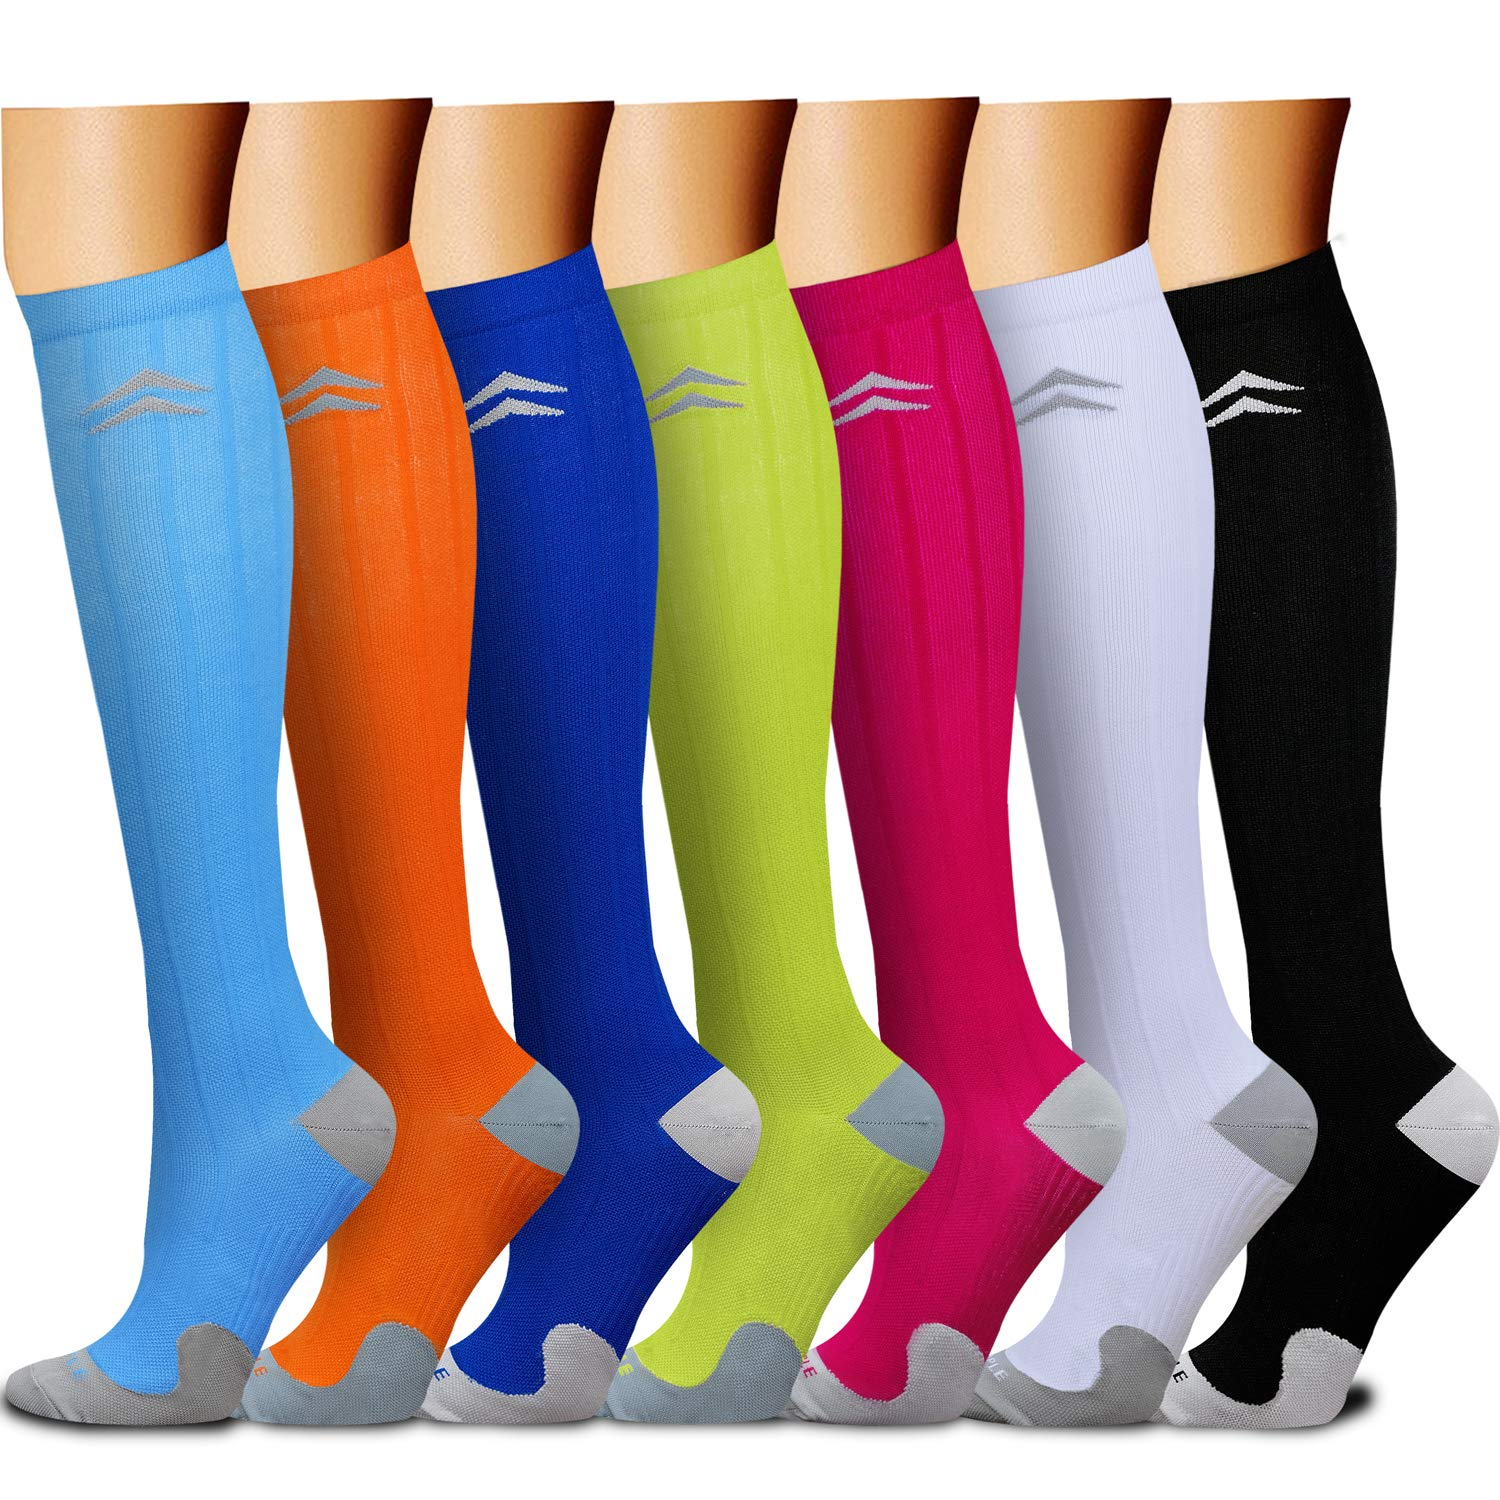 CHARMKING Compression Socks 15-20 mmHg is BEST Graduated Athletic & Medical for Men & Women Running, Travel, Nurses, Pregnant - Boost Performance, Blood Circulation & Recovery(Small/Medium,Assorted11)